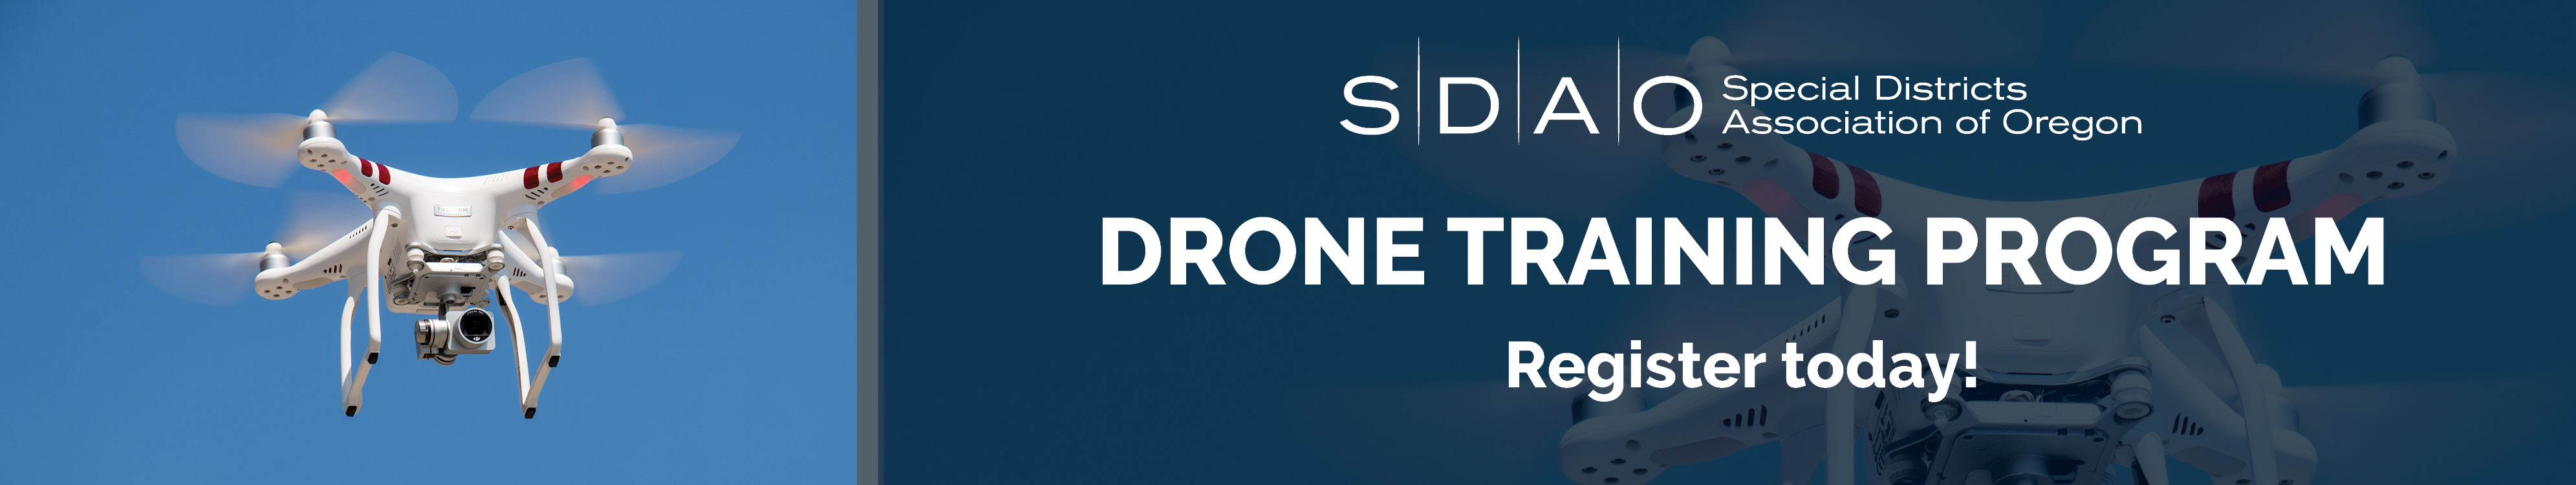 SDIS Drone Training Program